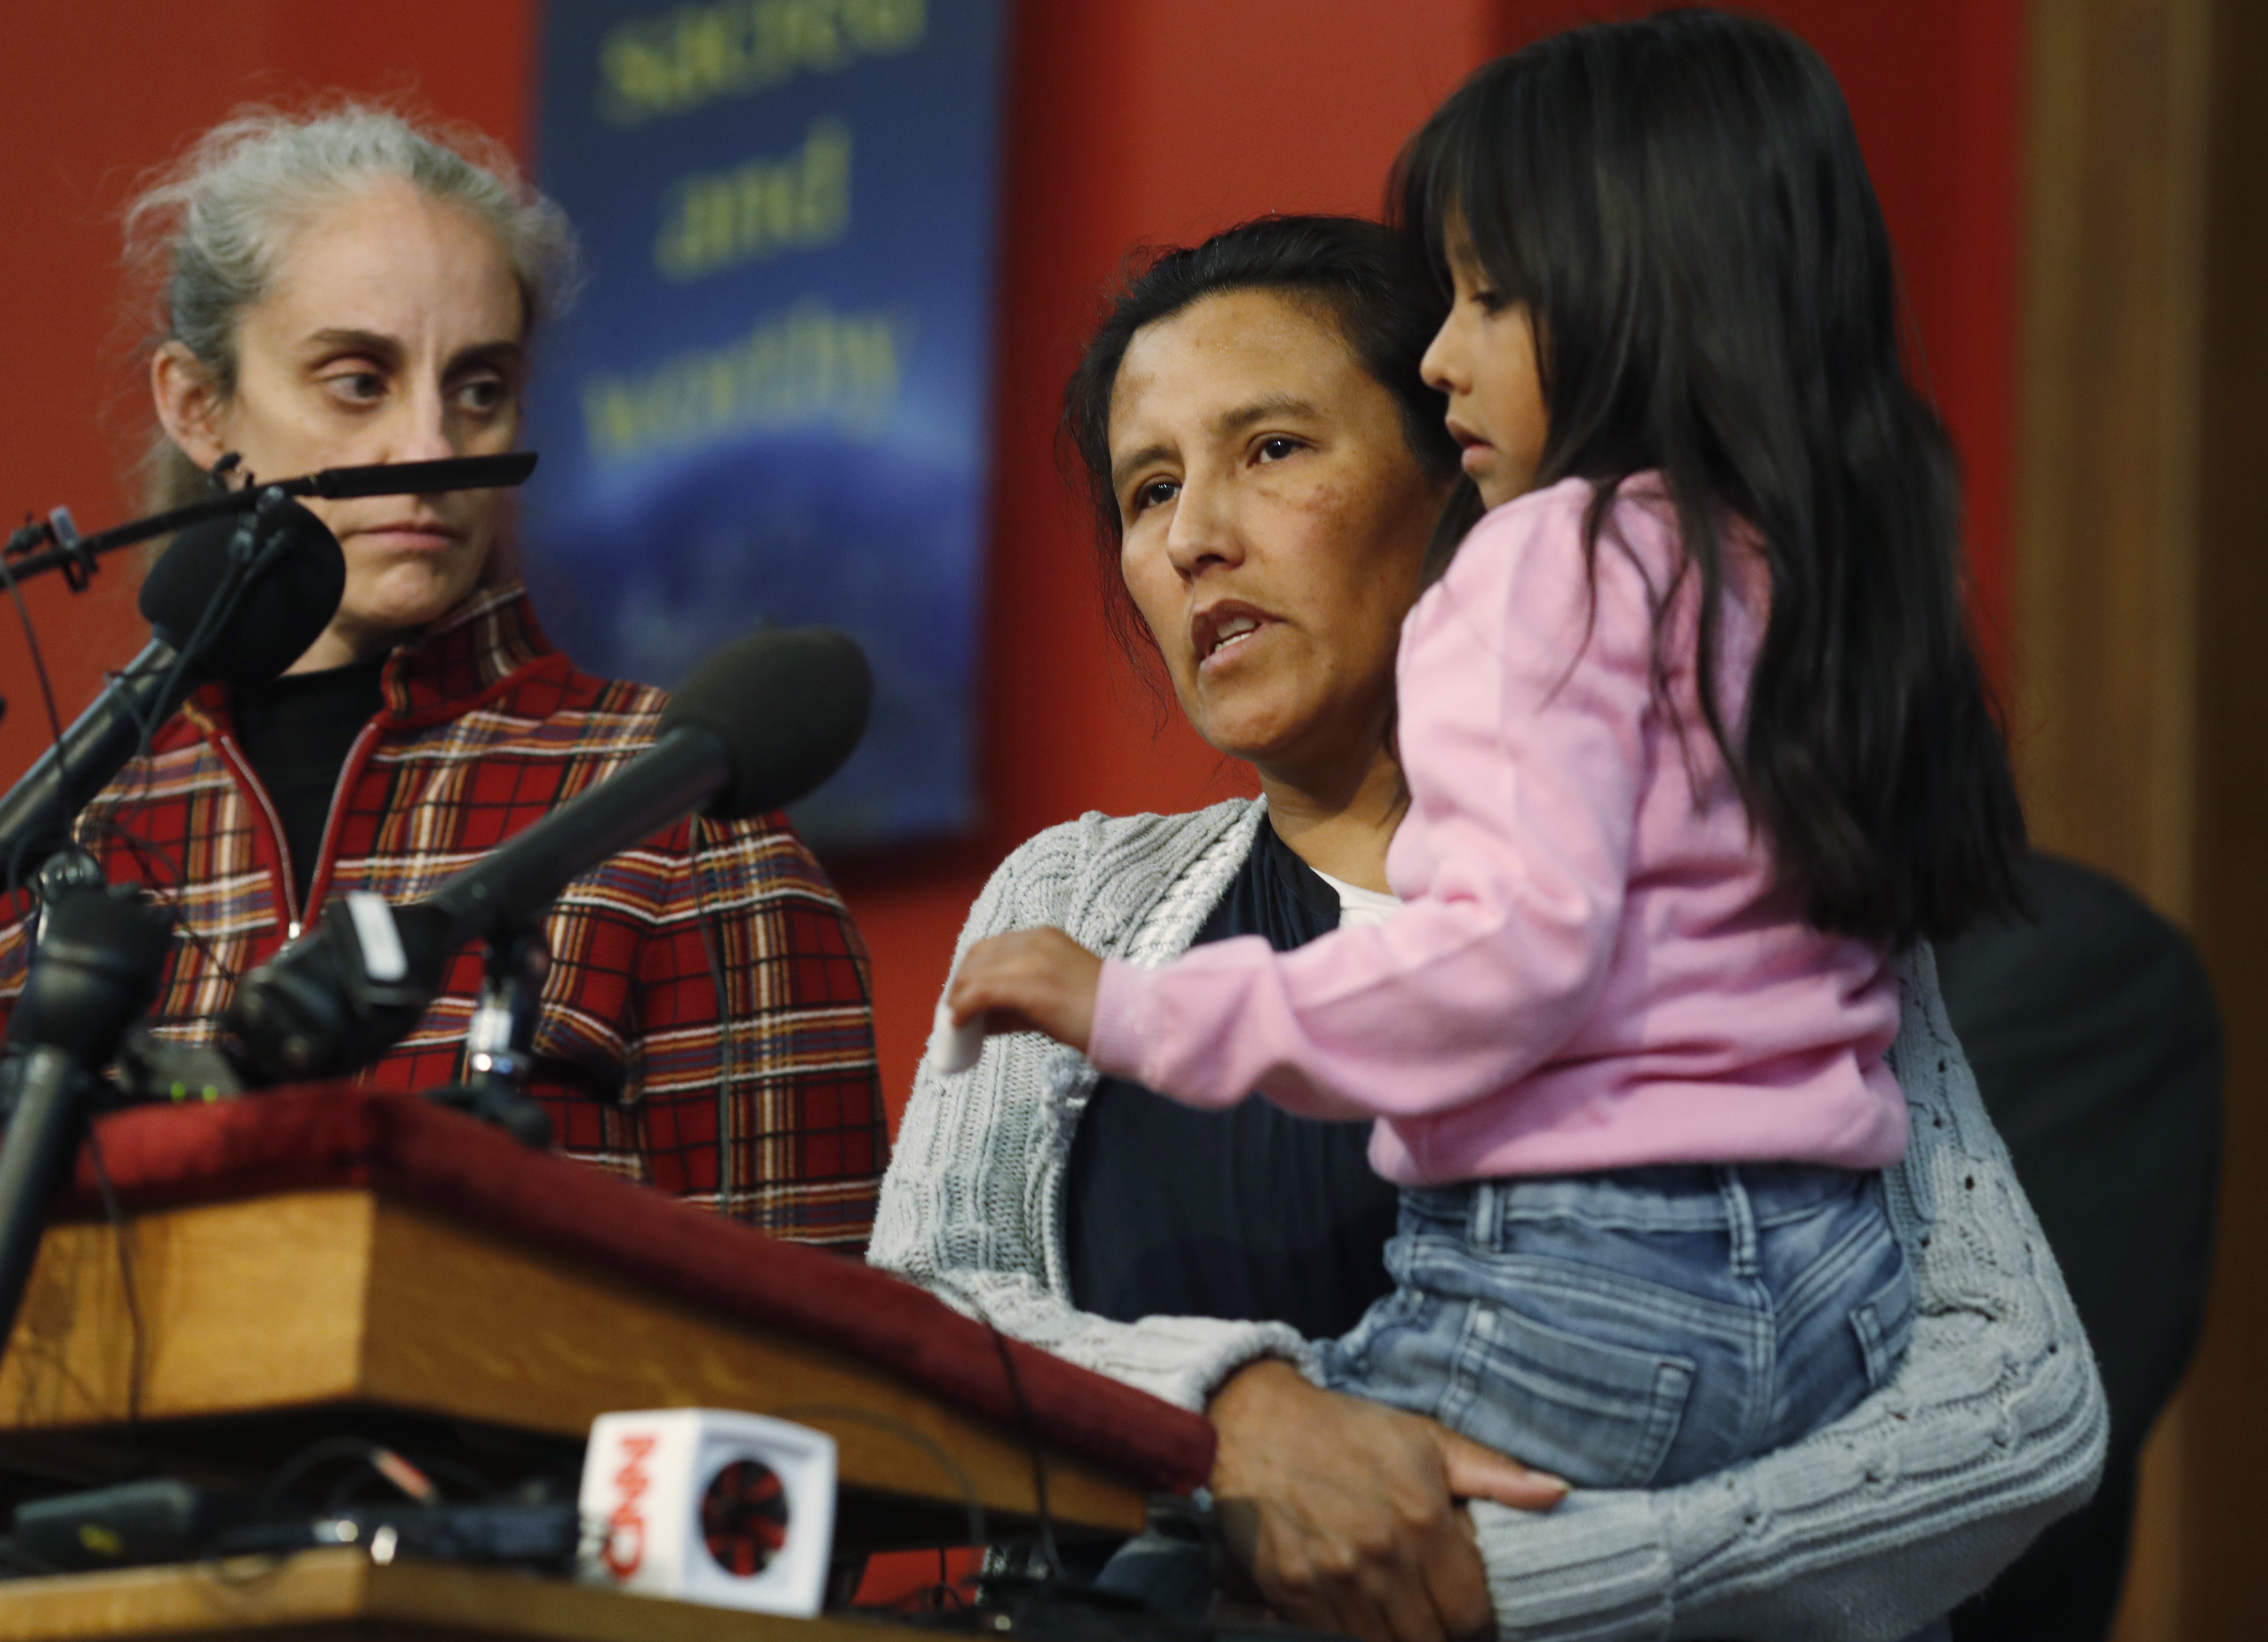 <p>Jeanette Vizguerra, a Mexican woman seeking to avoid deportation from the United States, center, speaks as she holds her 6-year-old daughter, Zuri, right, while Jennifer Piper, left, of the American Friends Service Committee, looks on during a news conference in a church in which Vizguerra and her children have taken refuge, Wednesday, Feb. 15, 2017, in Denver.</p>